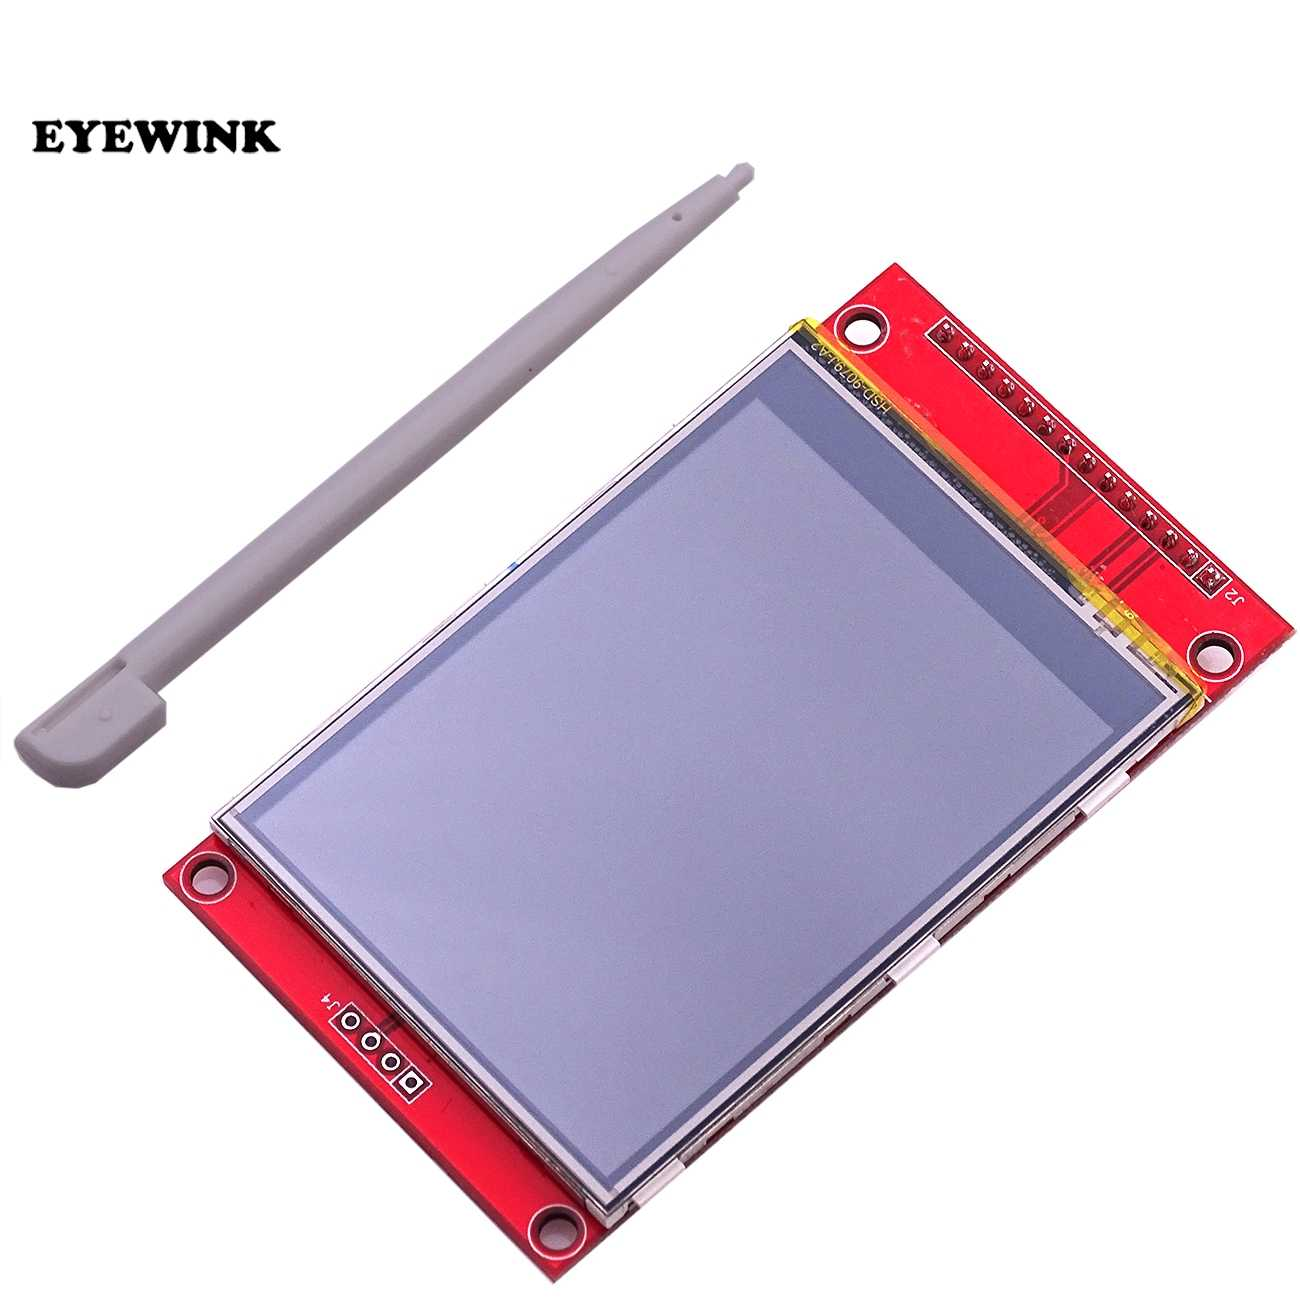 LCD Module-3.3V 240x320 2.4 SPI TFT LCD Touch Panel Serial Port Module with PBC ILI9341